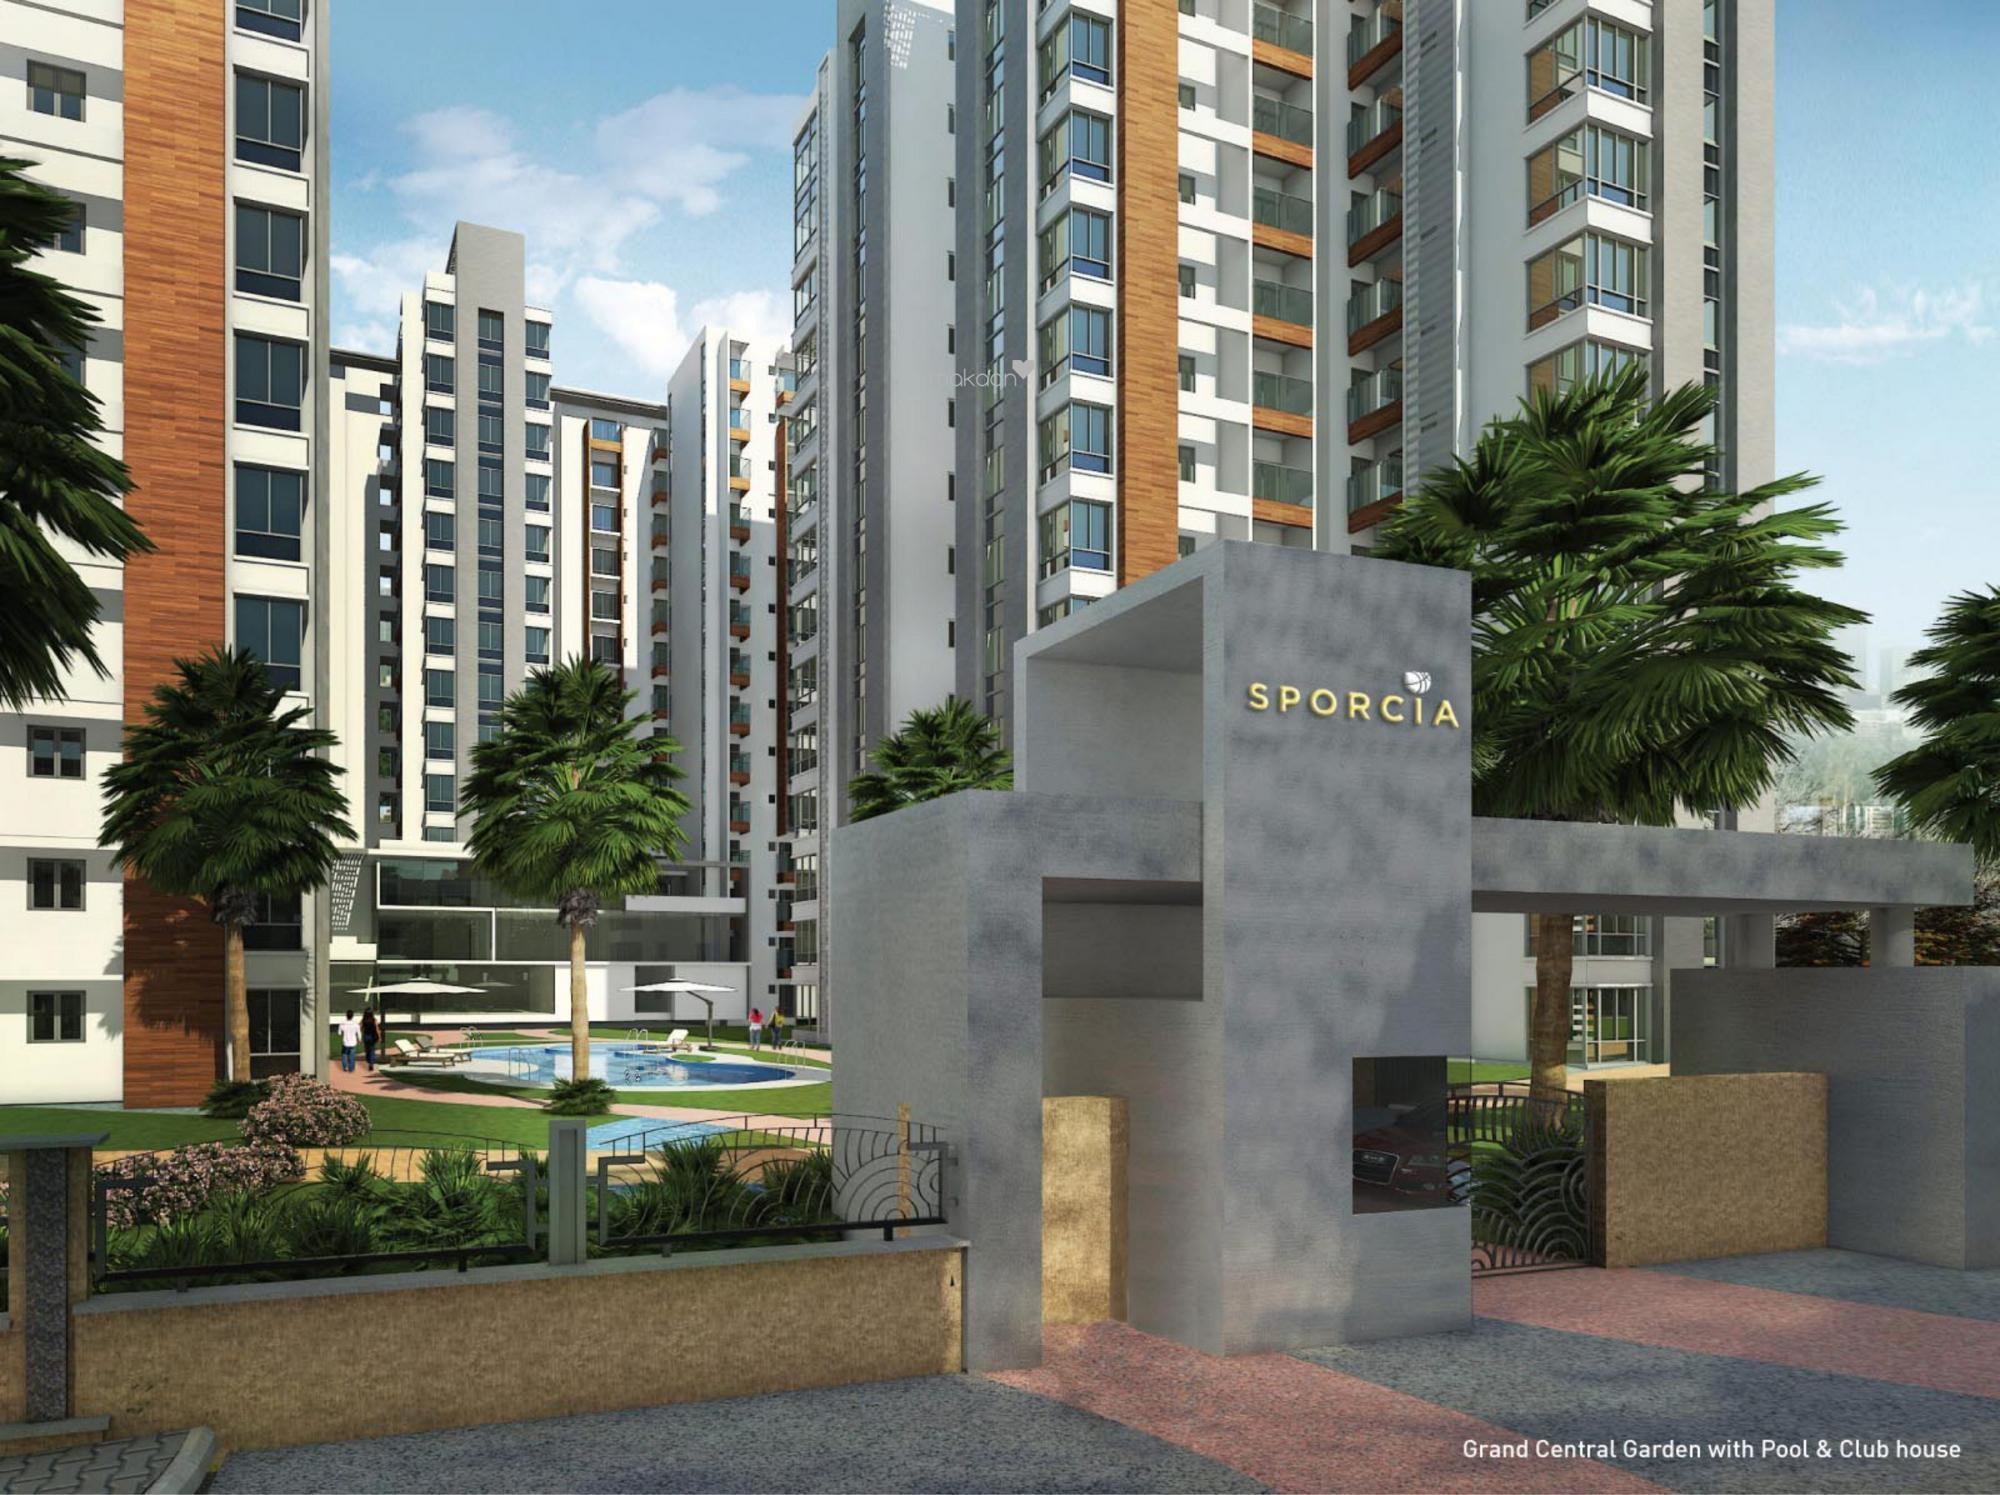 1007 sq ft 2BHK 2BHK+2T (1,007 sq ft) Property By Proptiger In Sporcia, Thanisandra